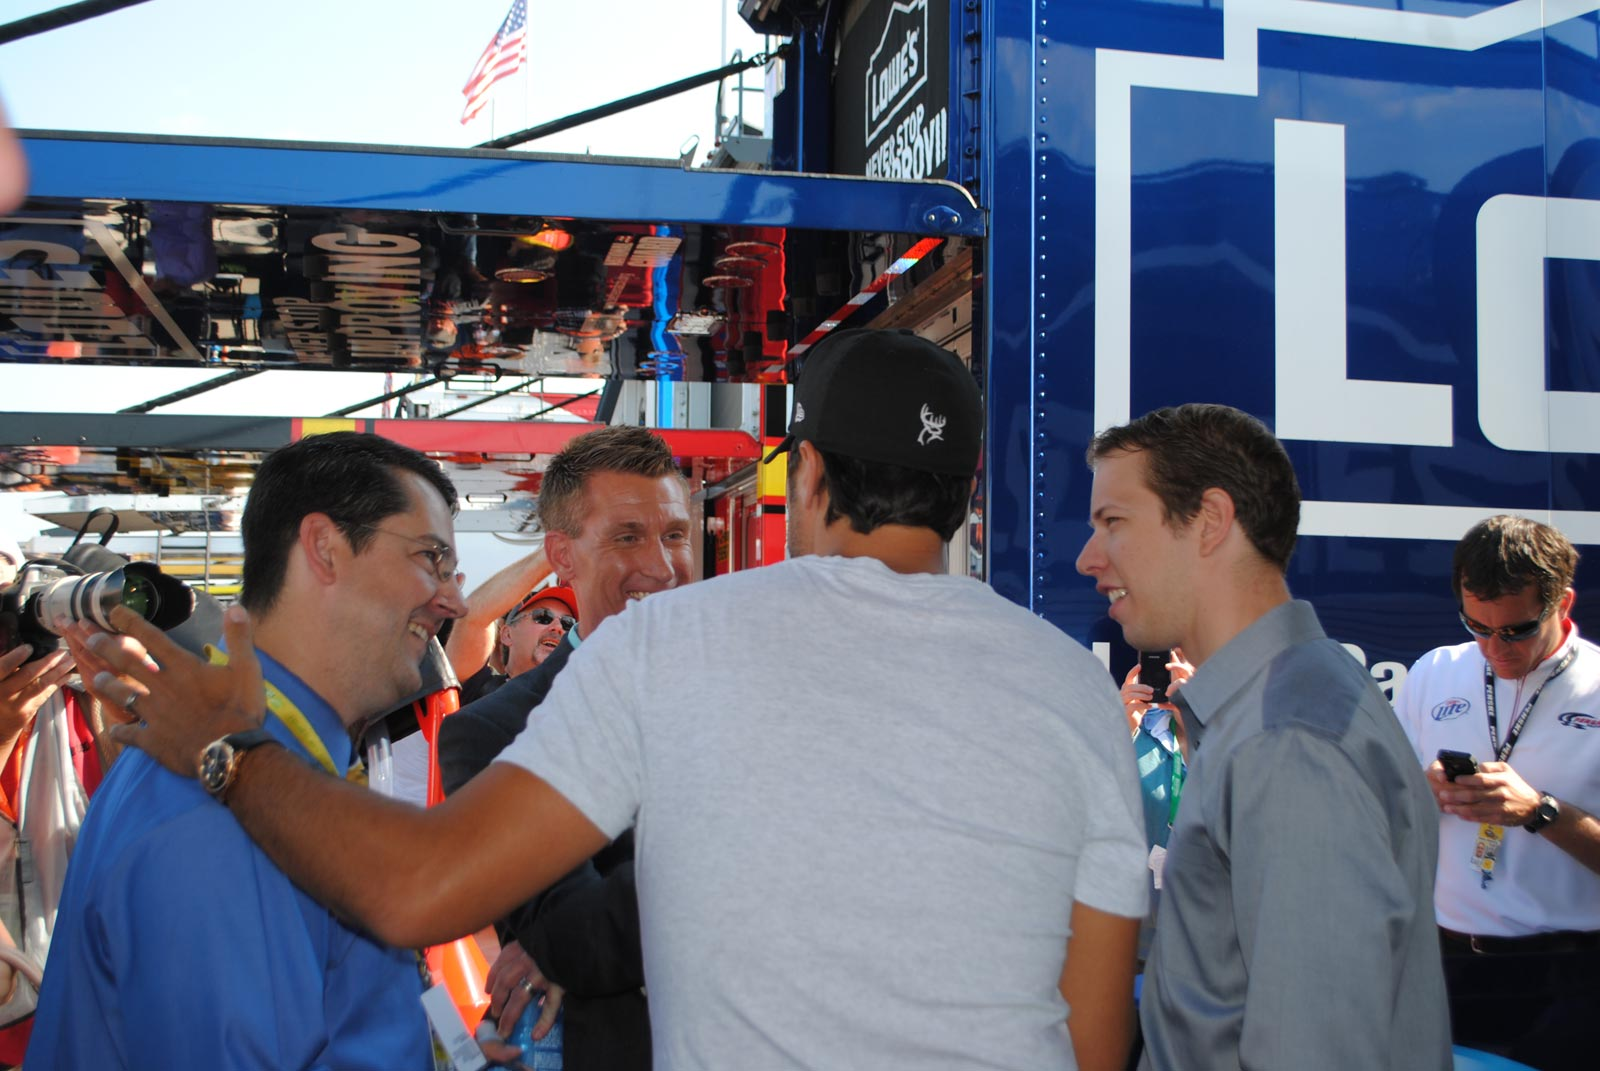 michigan-luke-bryan-marty-smith-brad-keselowski